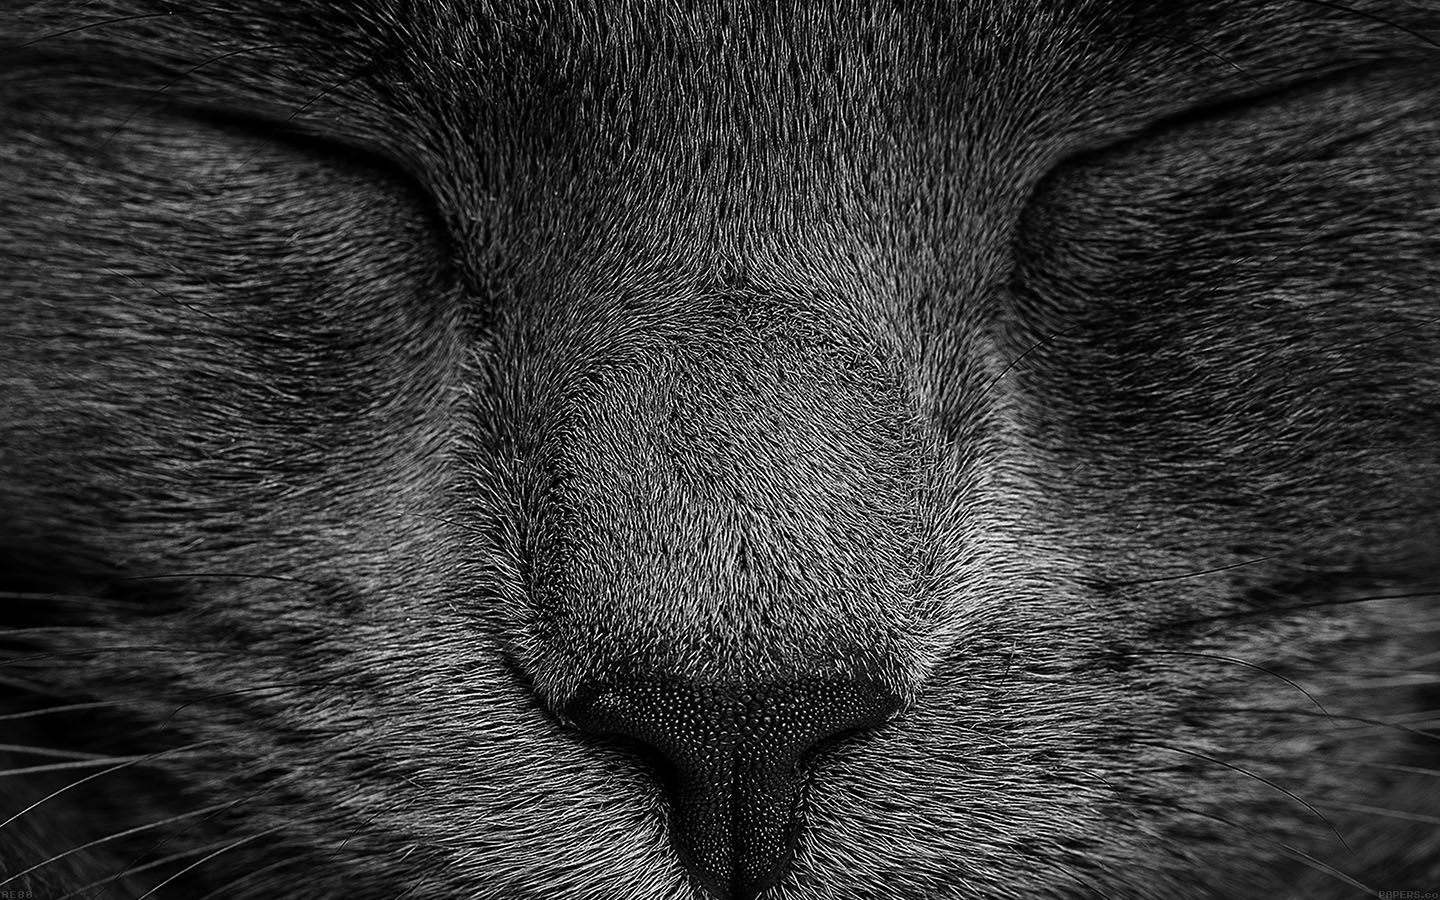 Pattern Iphone 5 Wallpaper Ae80 Sleeping Black Cat Zoom Nature Wallpaper